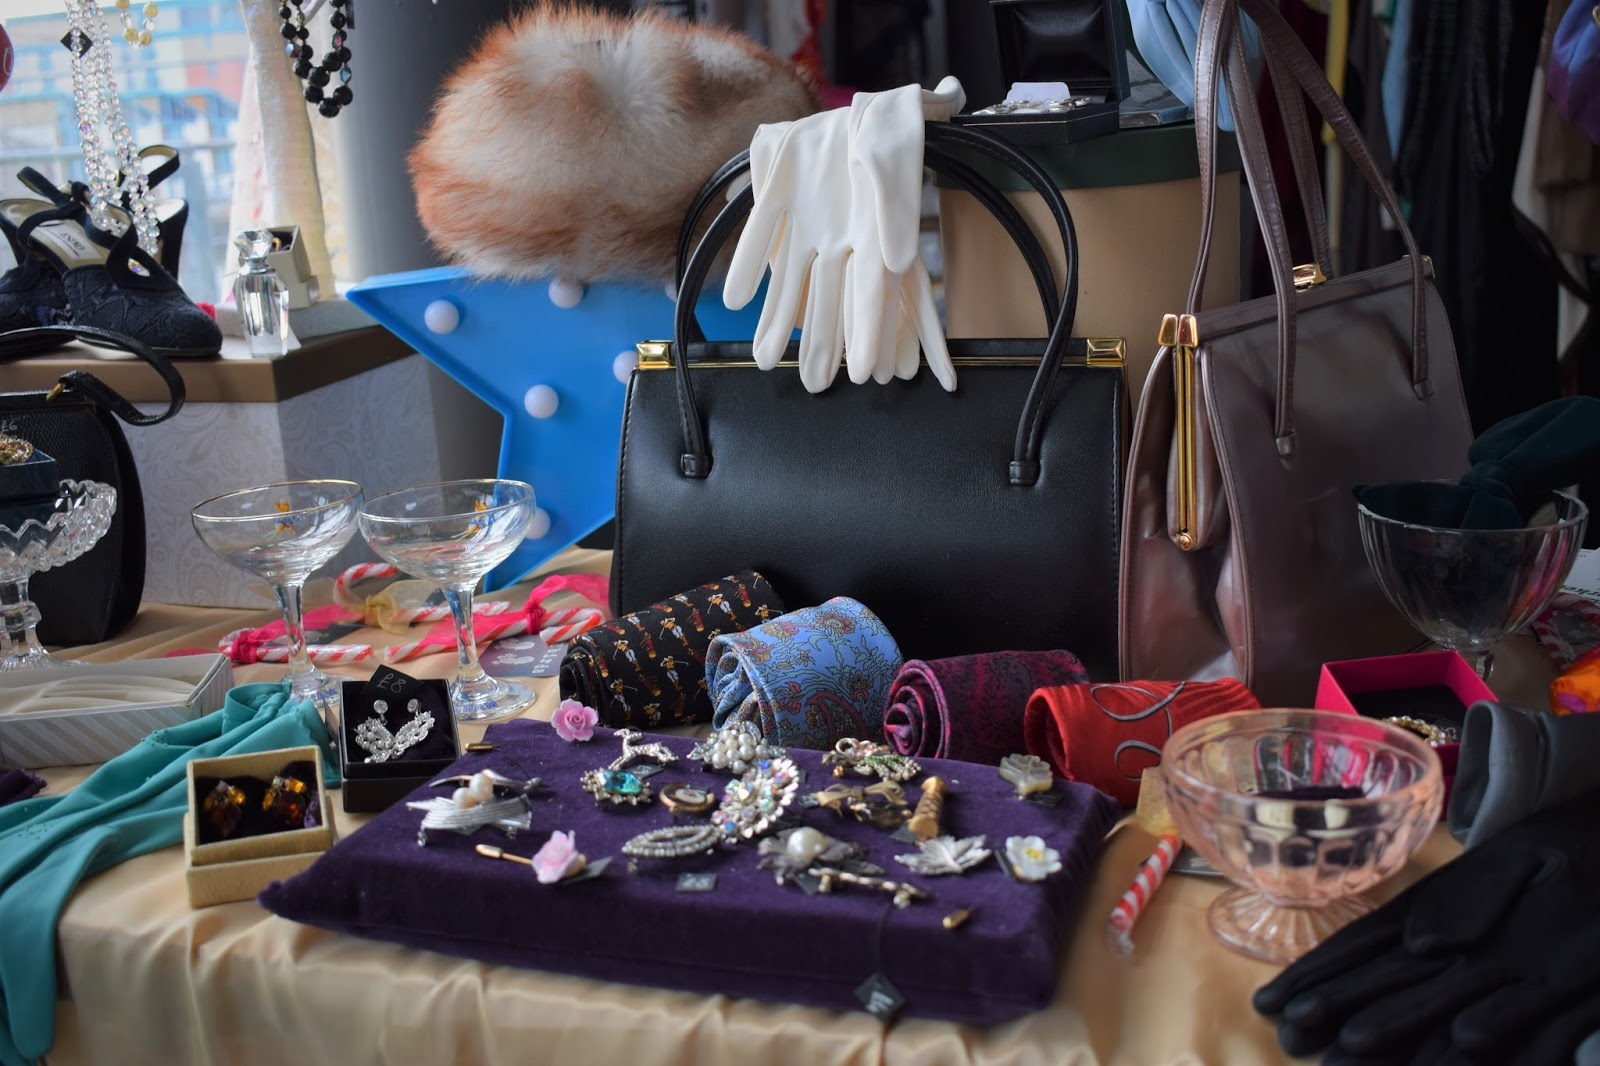 Specifically Vintage market event, The Quay Dundee, charity event Dundee, Vintage afternoon tea and fashion show, vintage accessories stall at vintage market